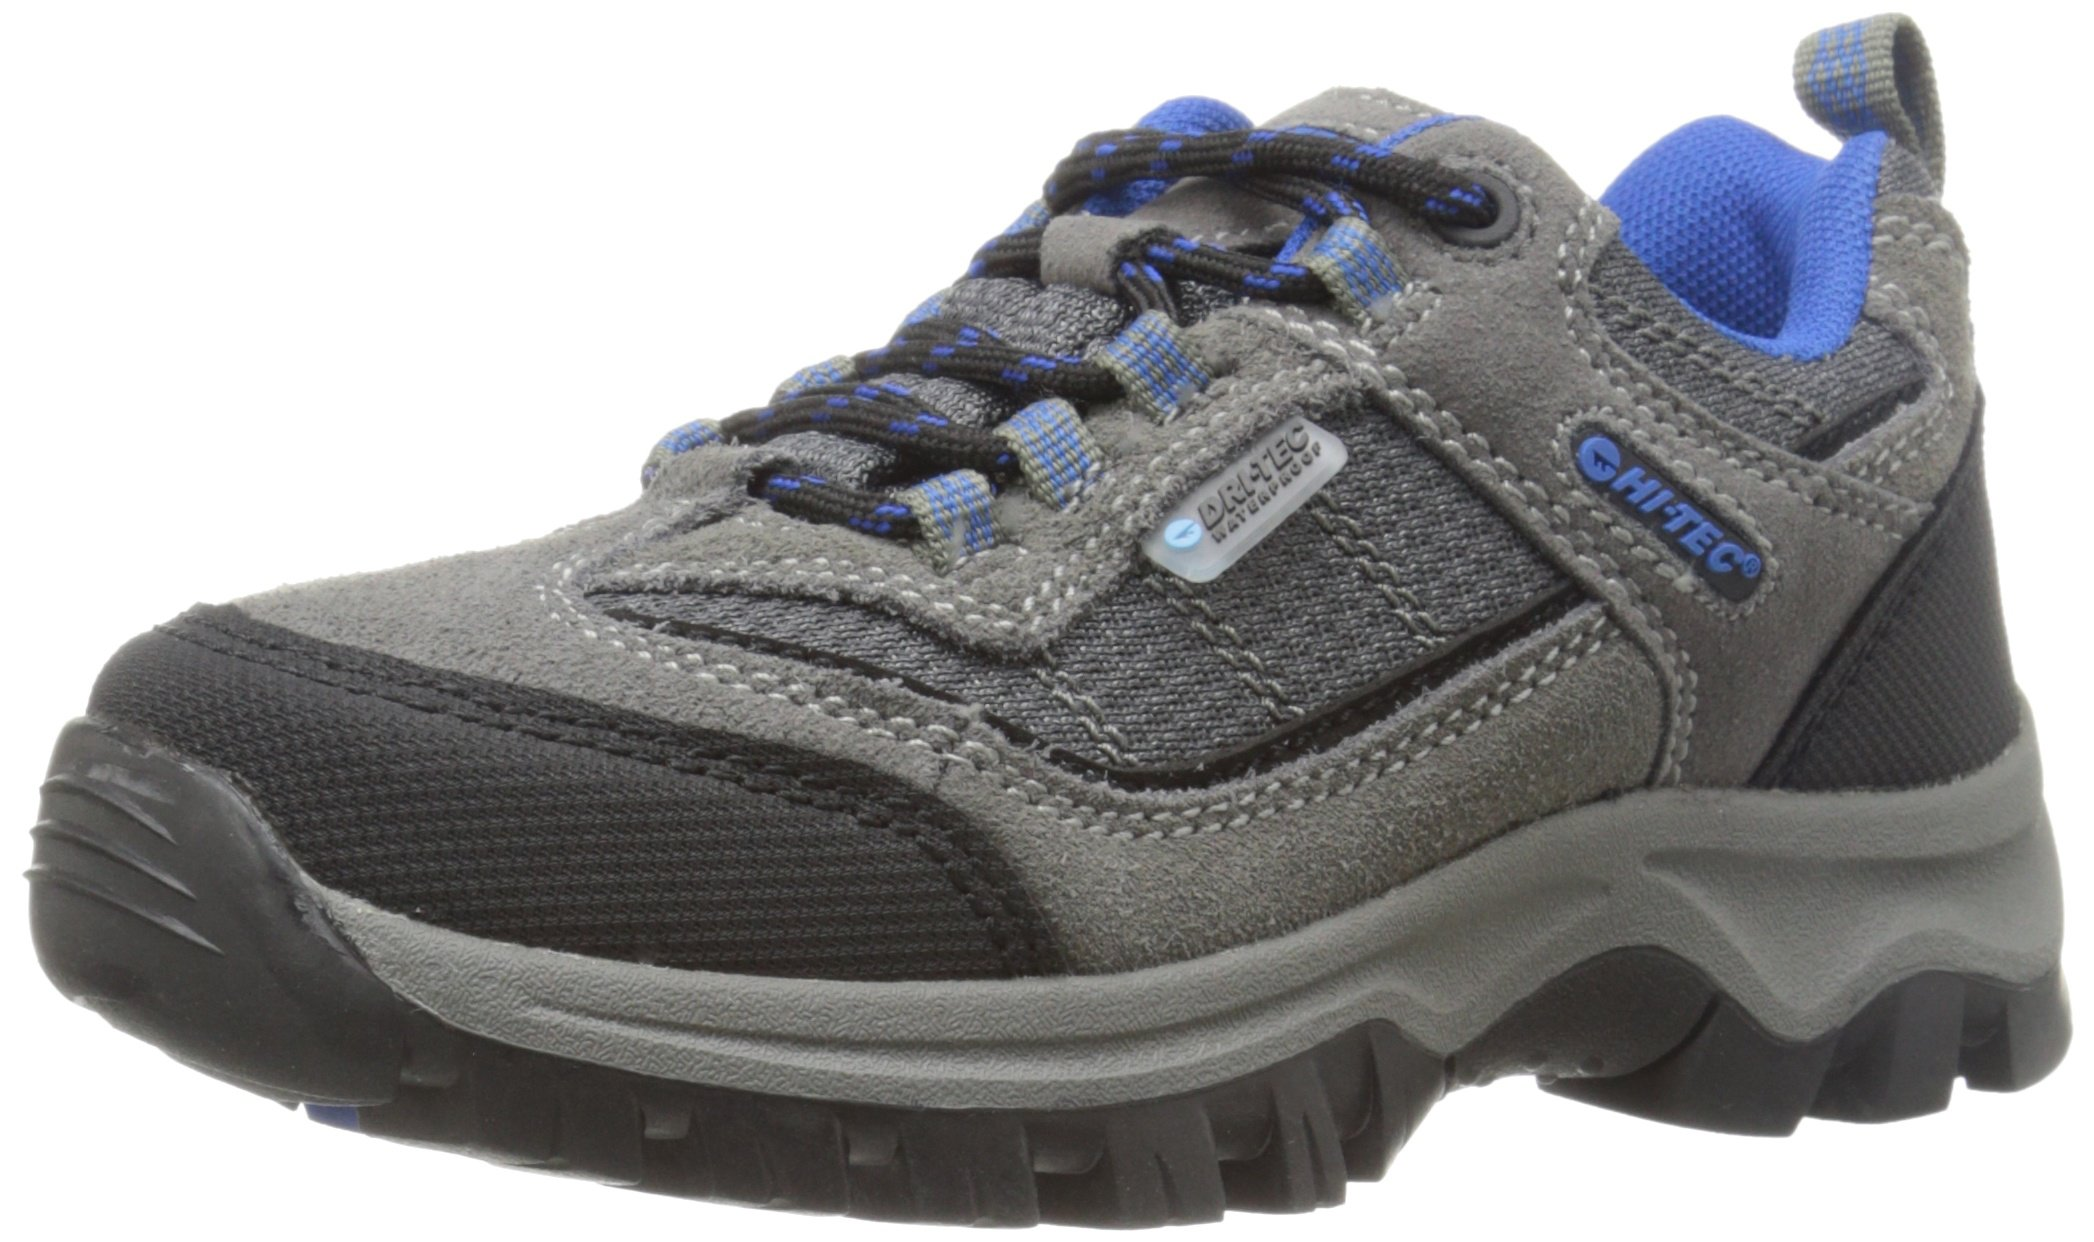 Hi-Tec Hillside Low WP Jr-K, Charcoal/Blue/Black 1 M US Little Kid